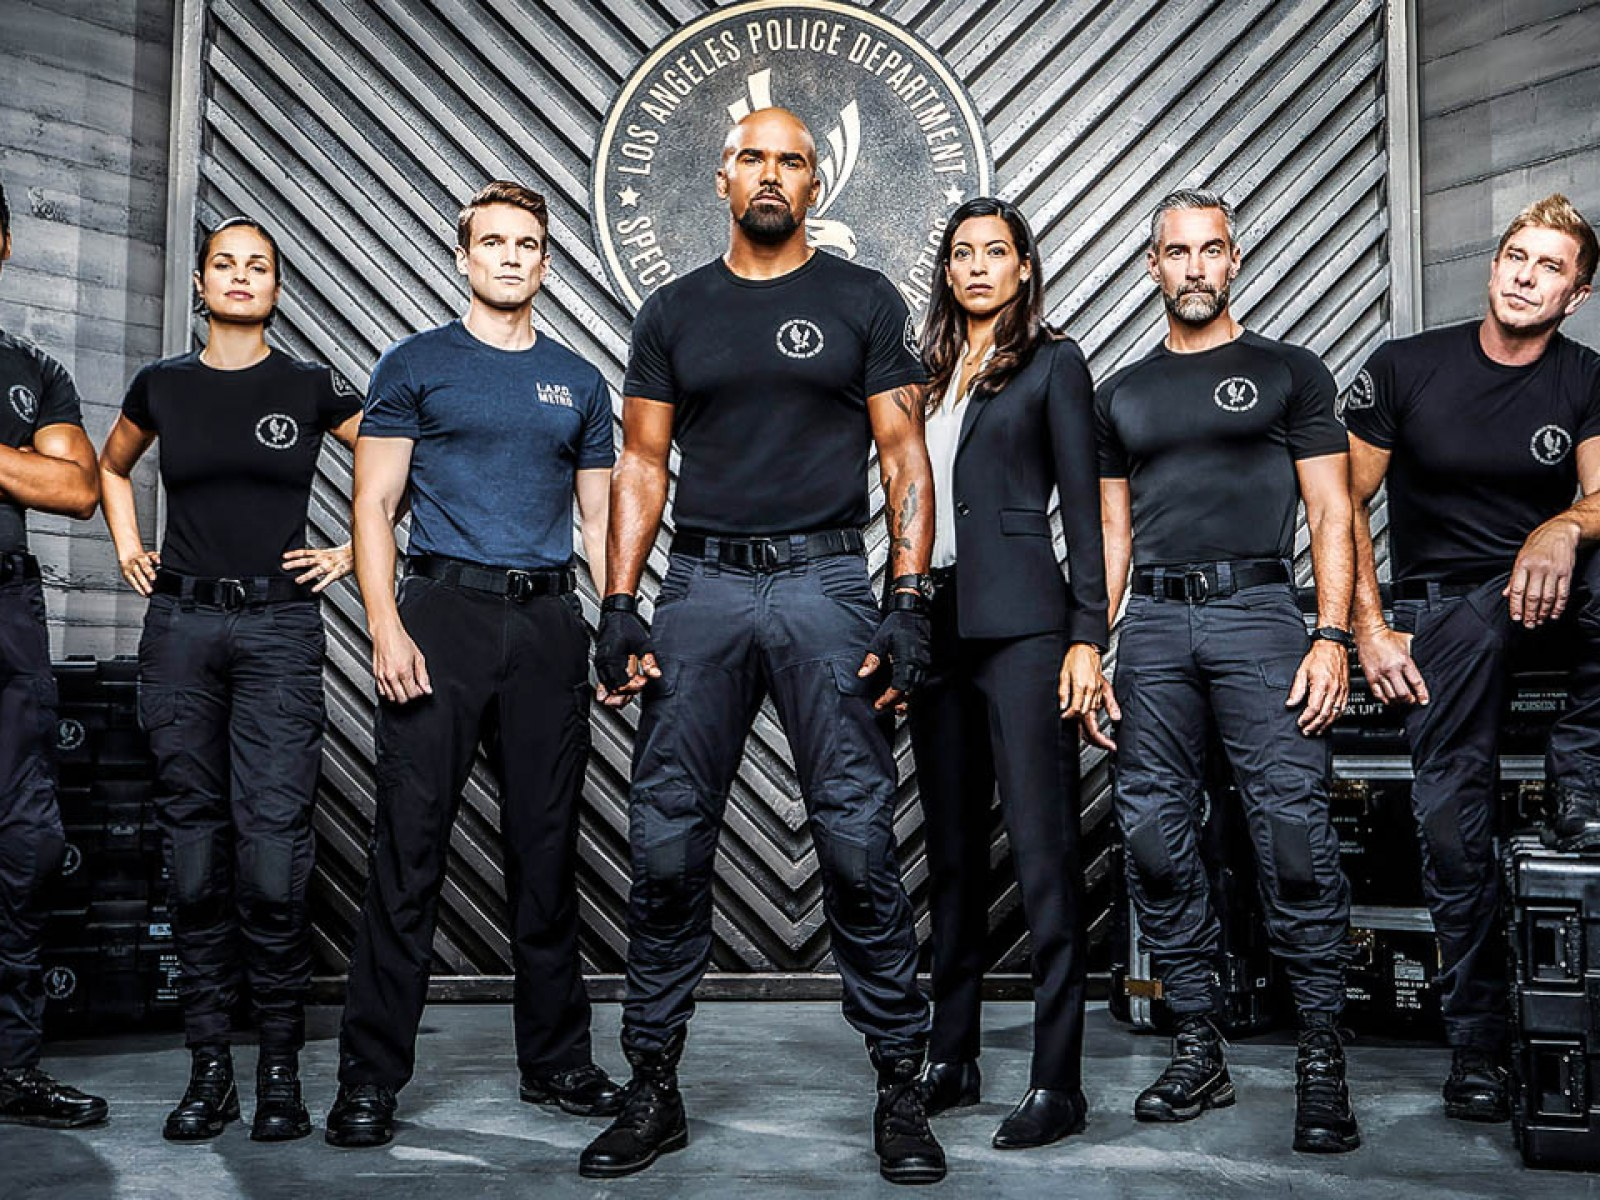 """""""S.W.A.T"""" Season 5 Release Date - Here Is Everything We Know"""